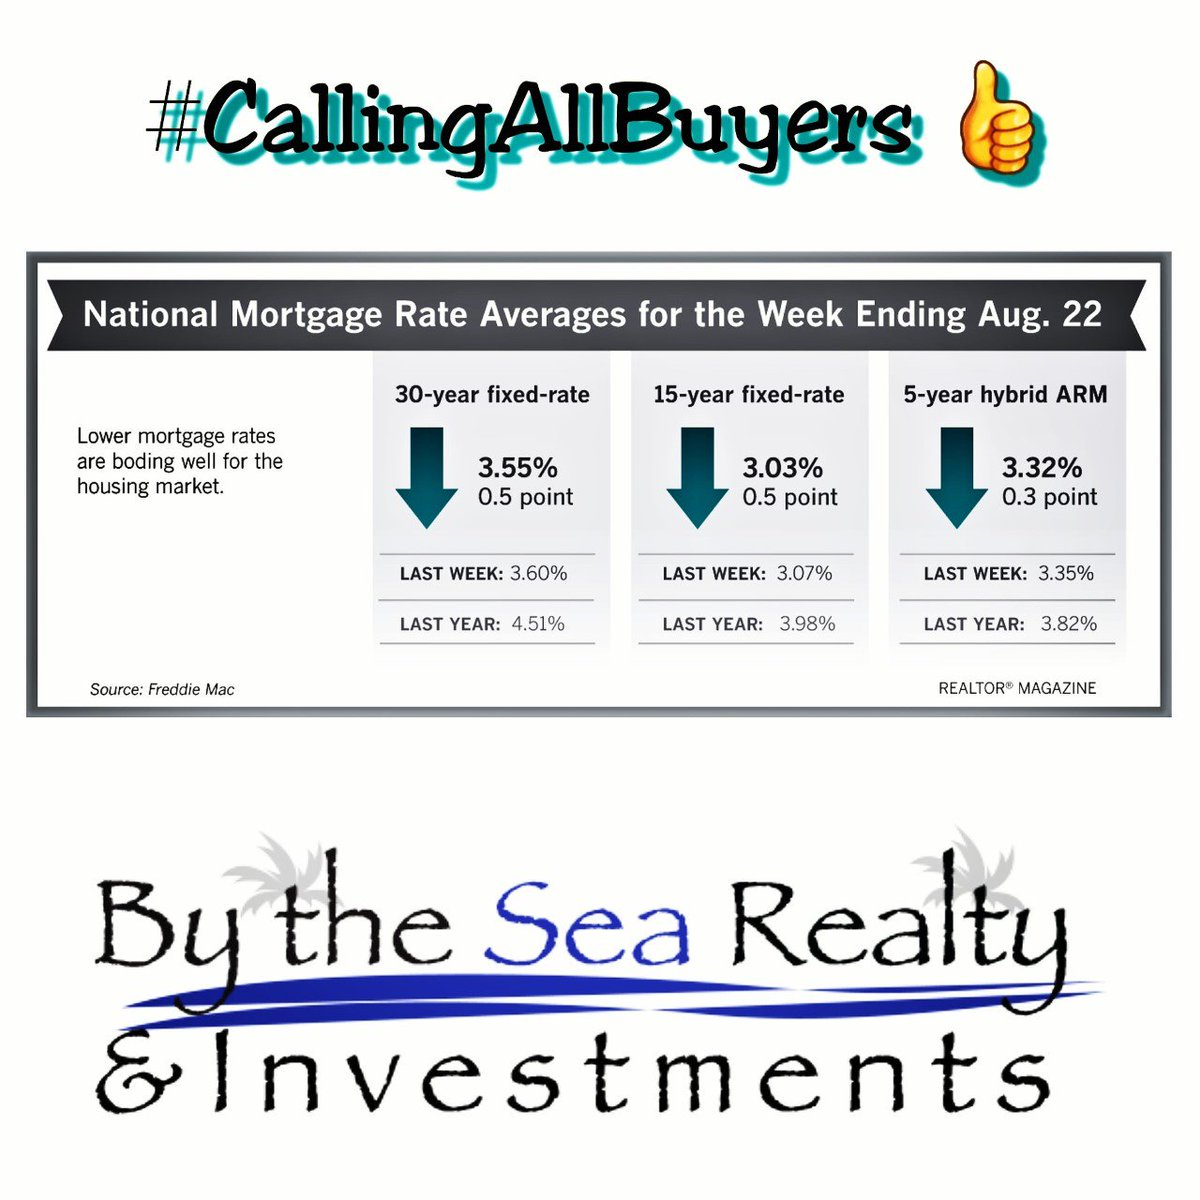 #MortgageRates back in 2016 Territory! The drop in mortgage rates continues to stimulate the #realestate #buyersmarket and the #economy! #buy #buyer #millenials #firsttimehomebuyers #downpaymentassistance #puntgagordahomes #homebuyingtips #residential #deepcreekrealestate #pgi https://t.co/9uhD5rzkUJ